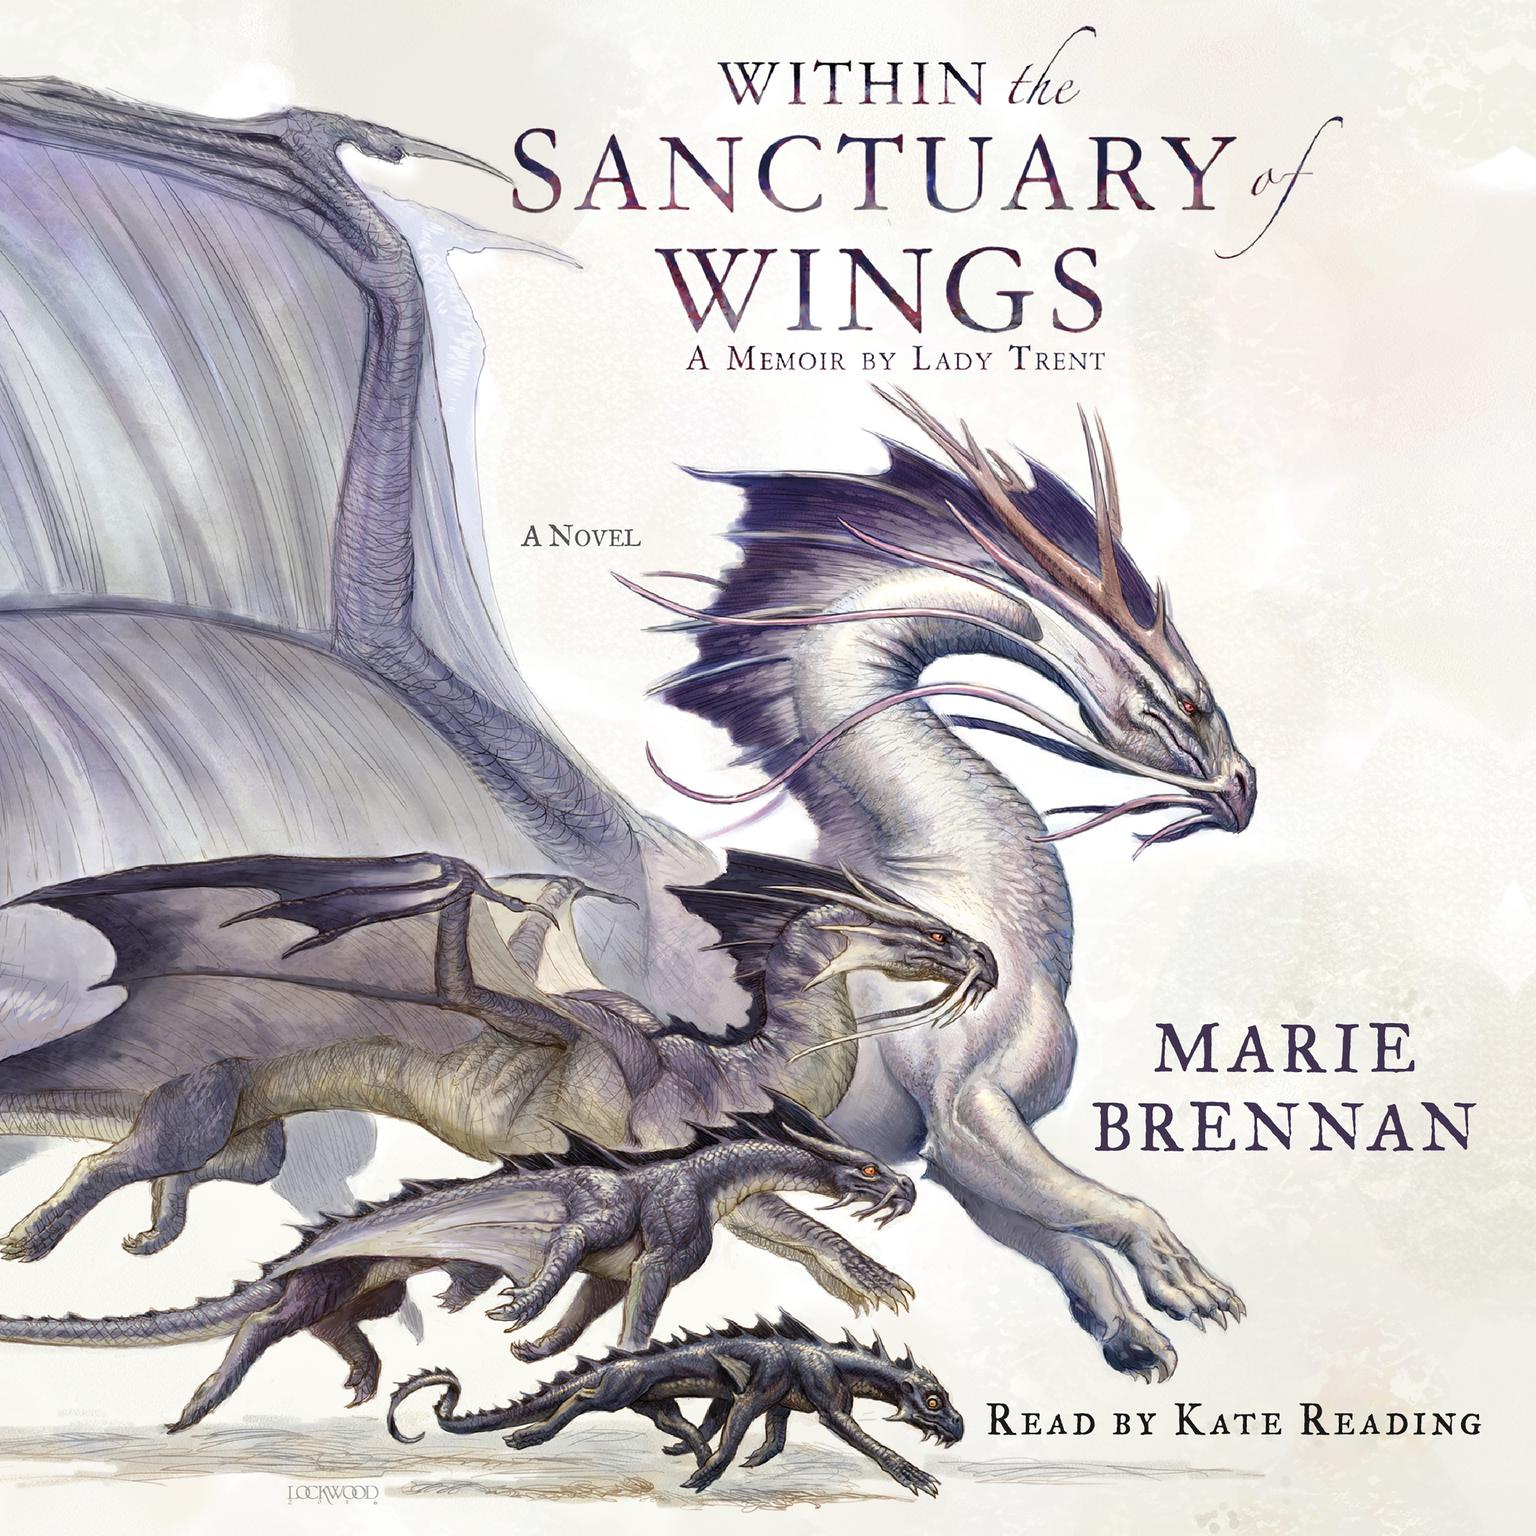 Printable Within the Sanctuary of Wings: A Memoir by Lady Trent Audiobook Cover Art